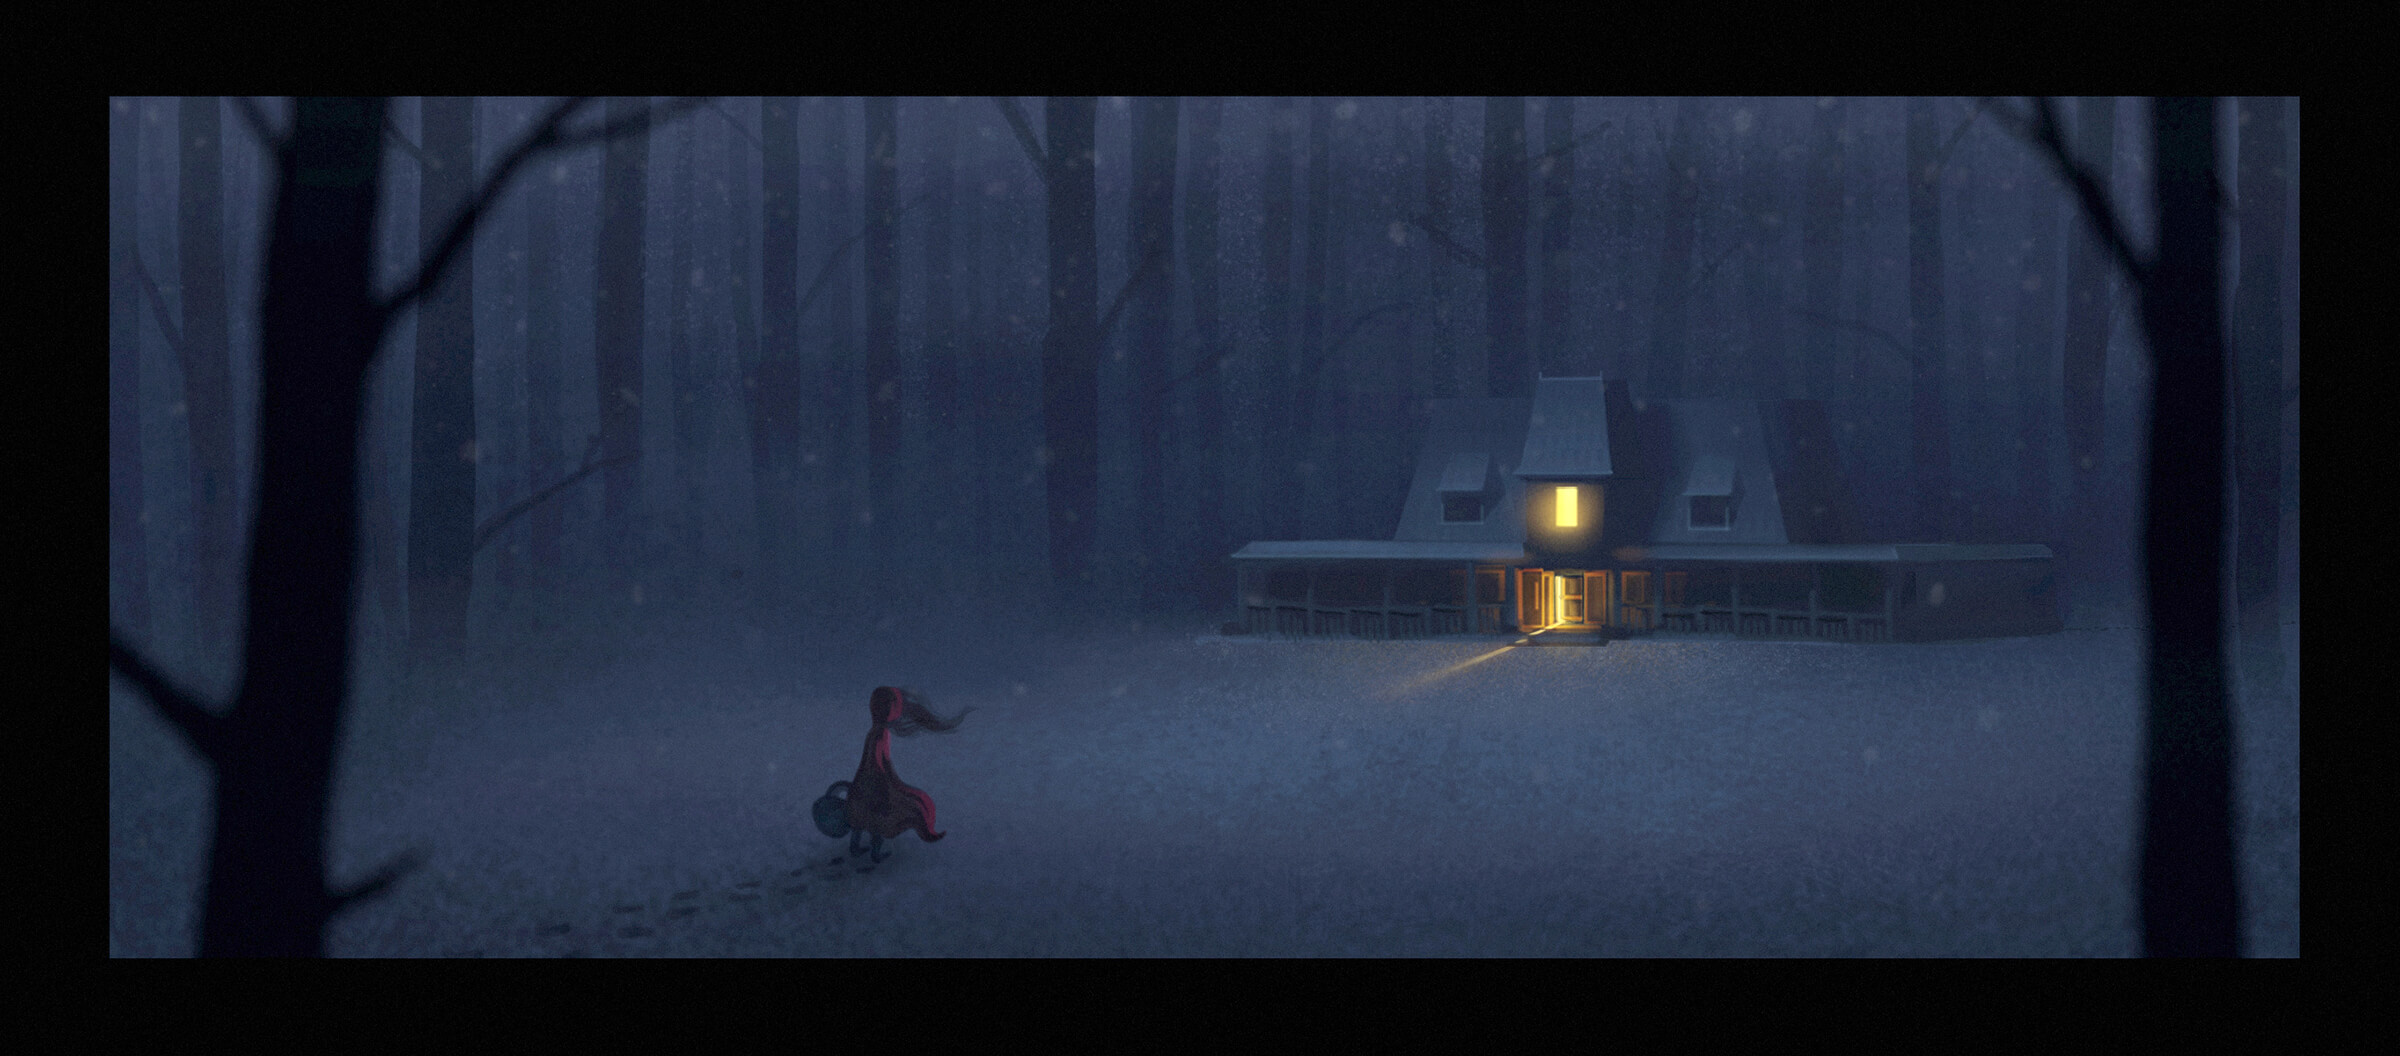 A woman in red approaches a house with an open door on a snowy evening